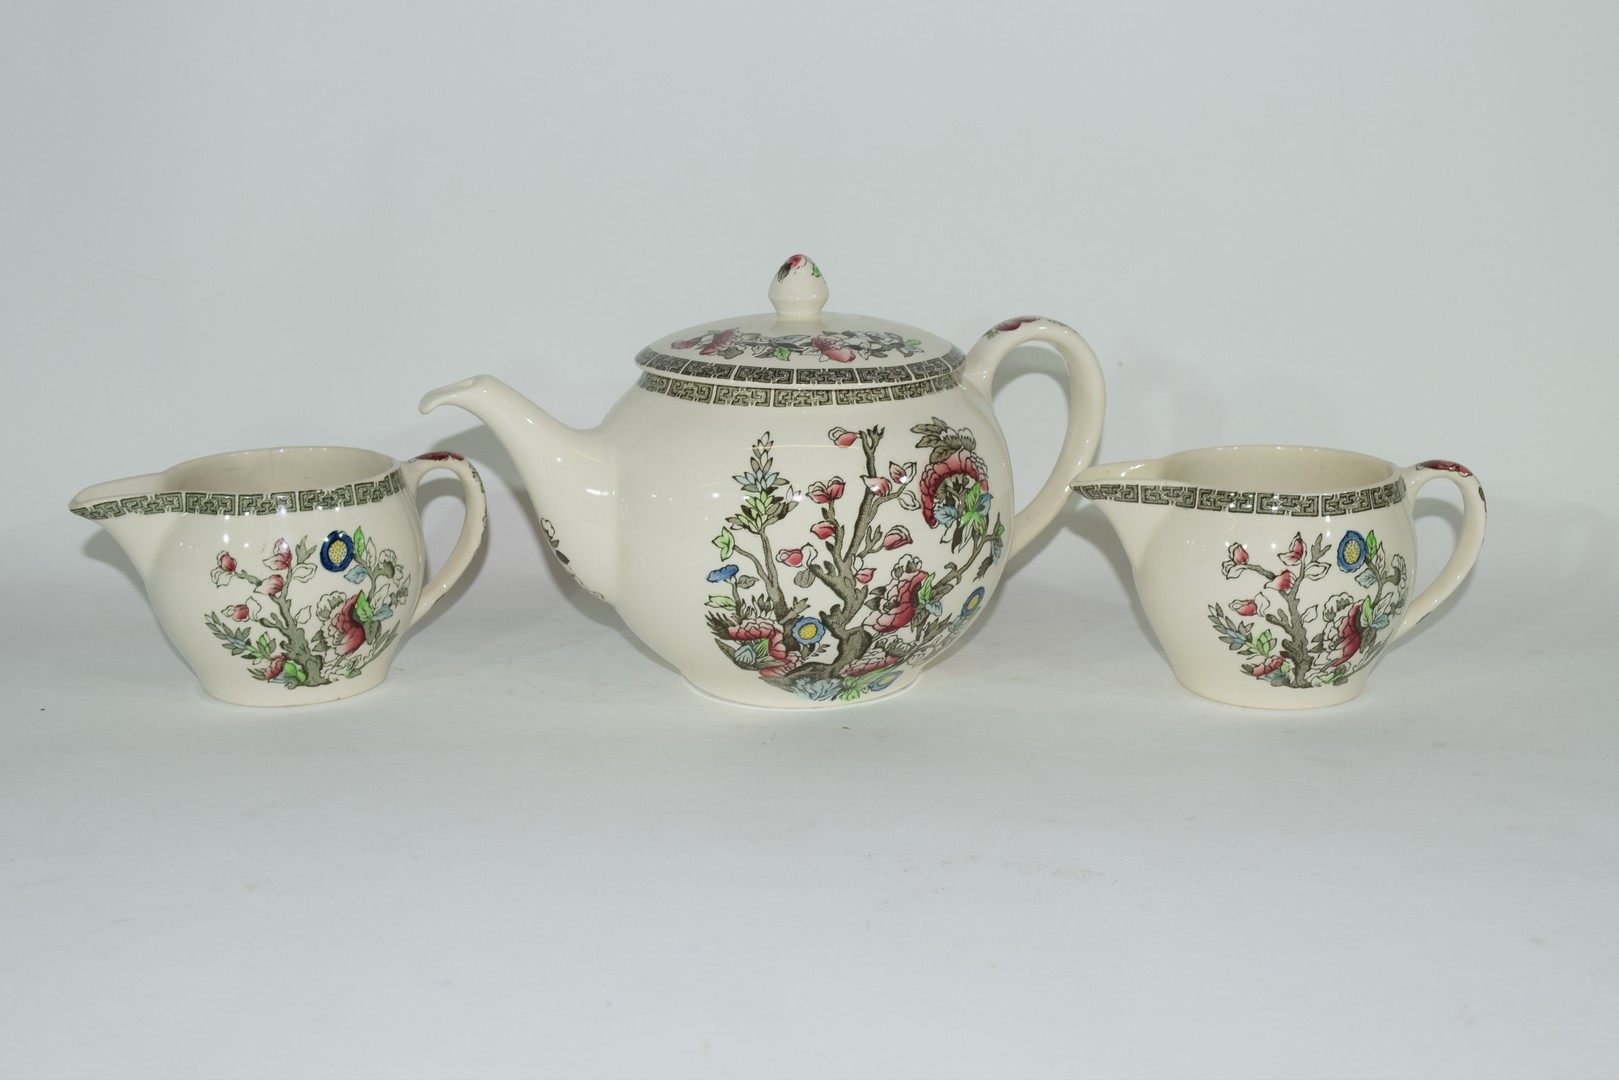 Extensive quantity of Johnson Bros tea and dinner wares